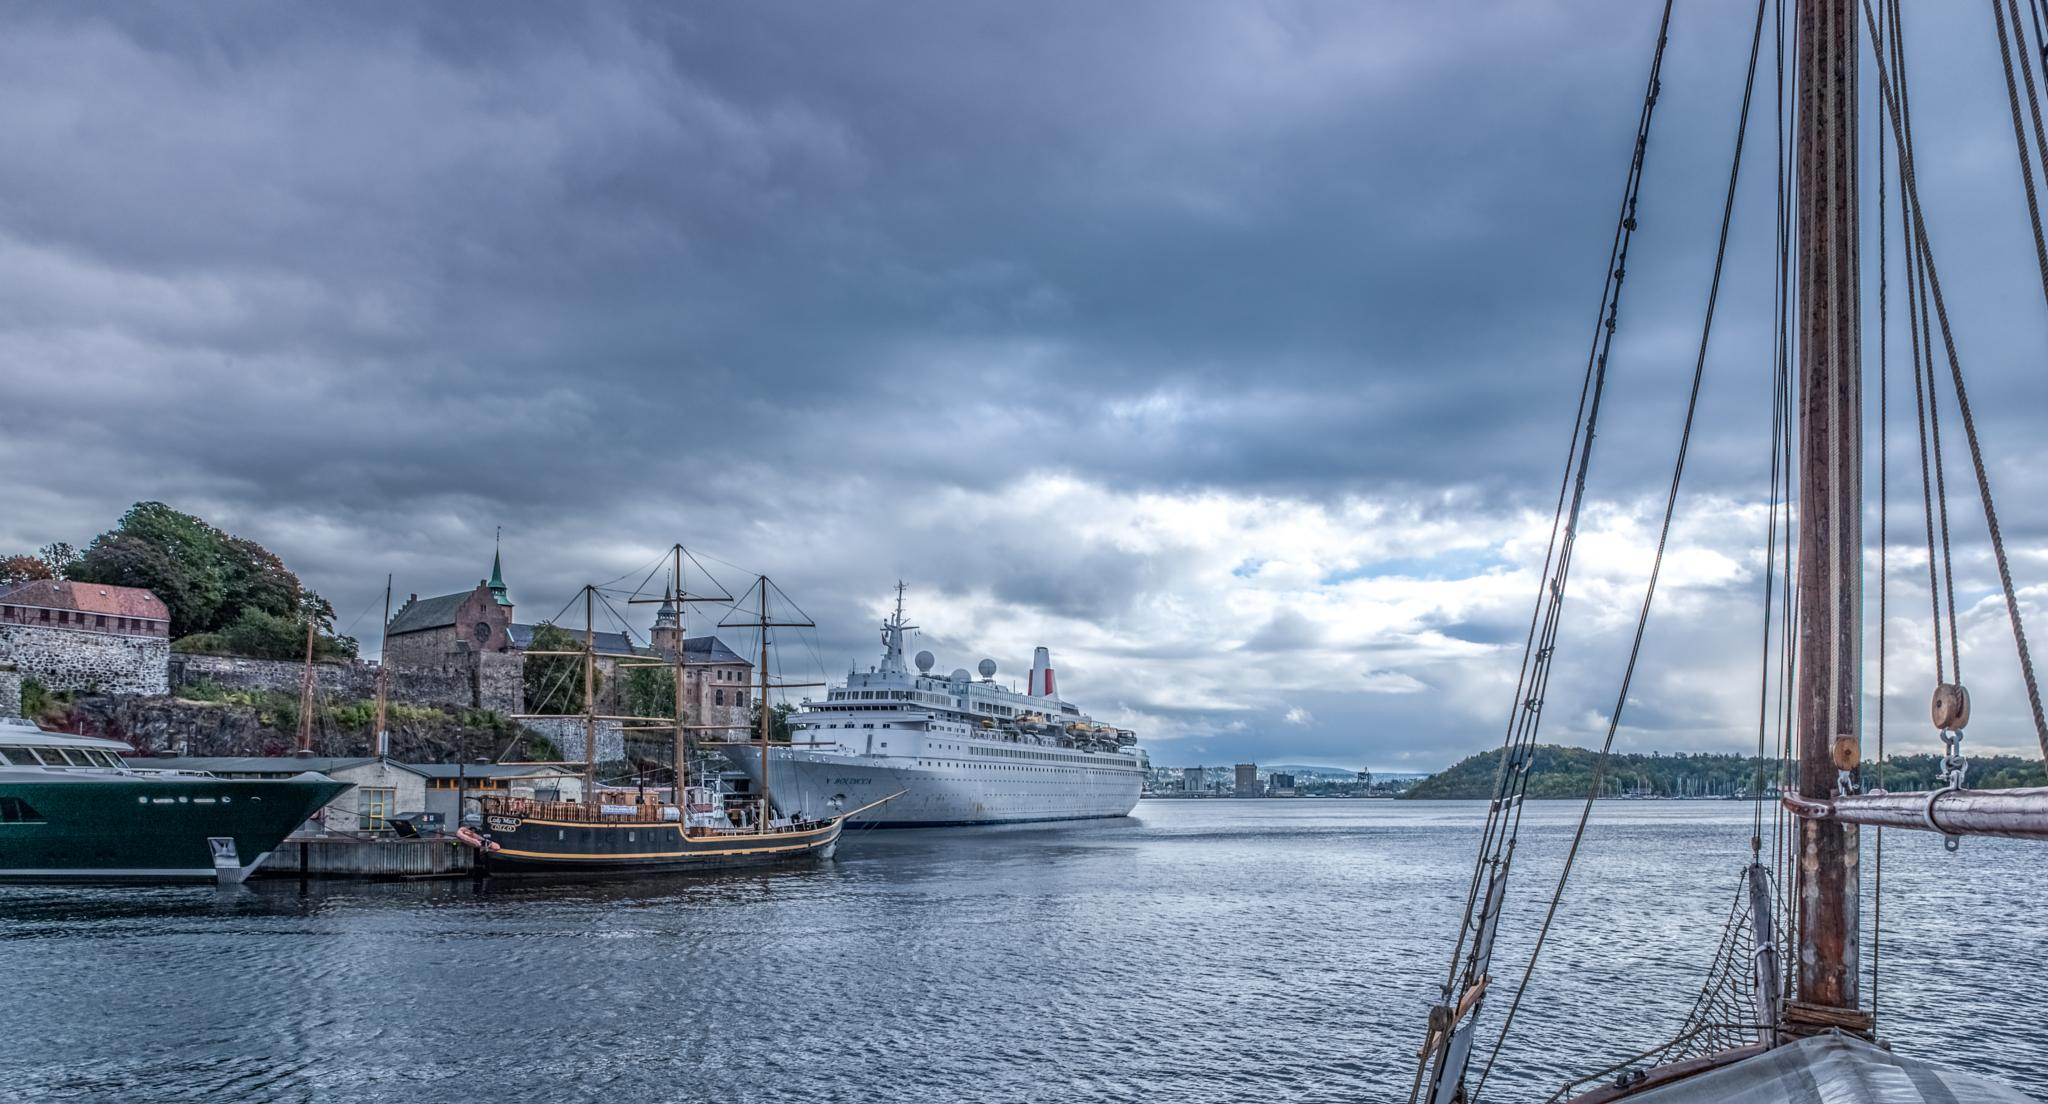 Oslo Fjord - A loveley place by Jens Walter